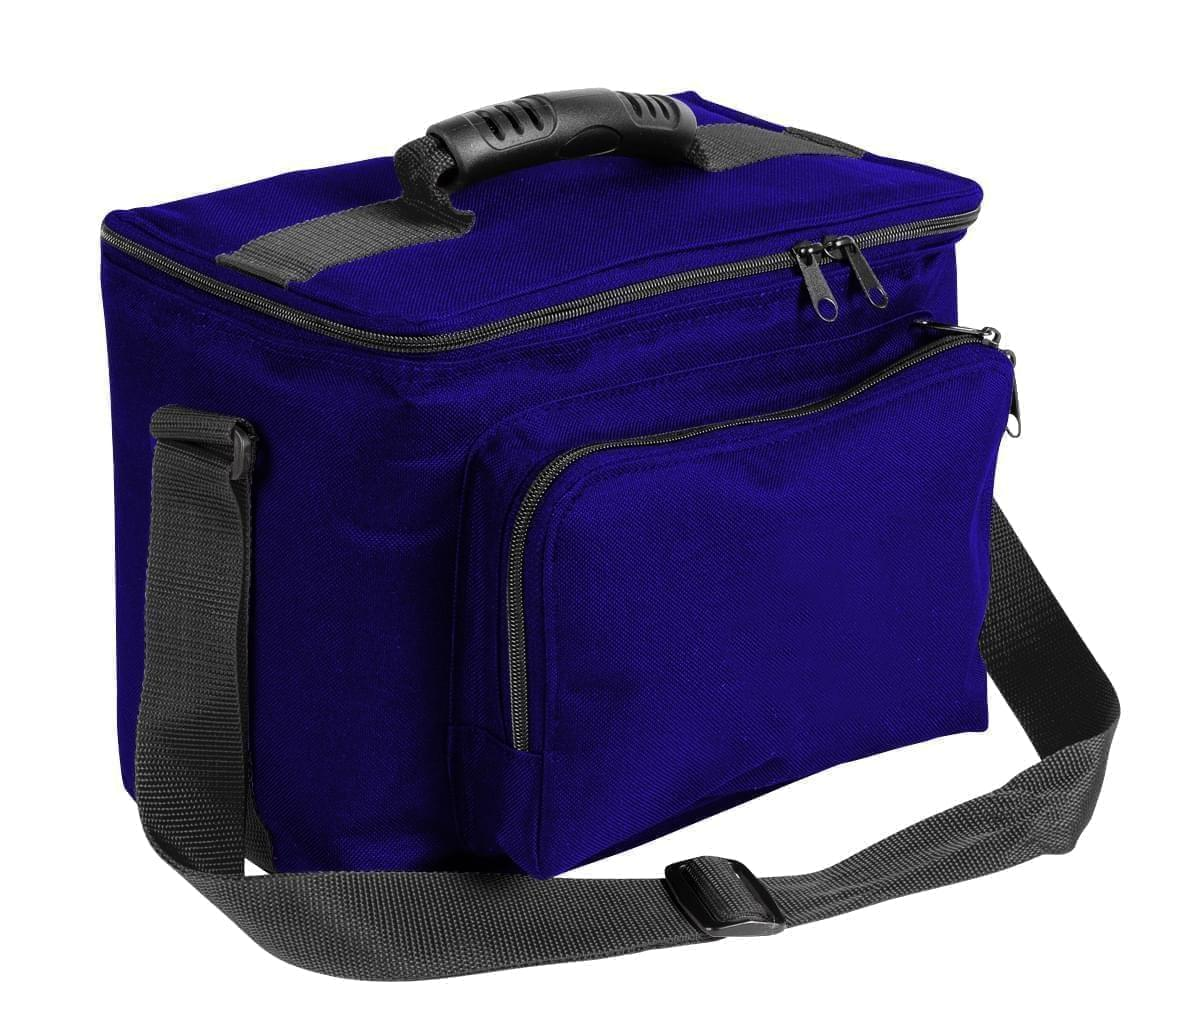 USA Made Nylon Poly Lunch Coolers, Purple-Black, 11001161-AYR